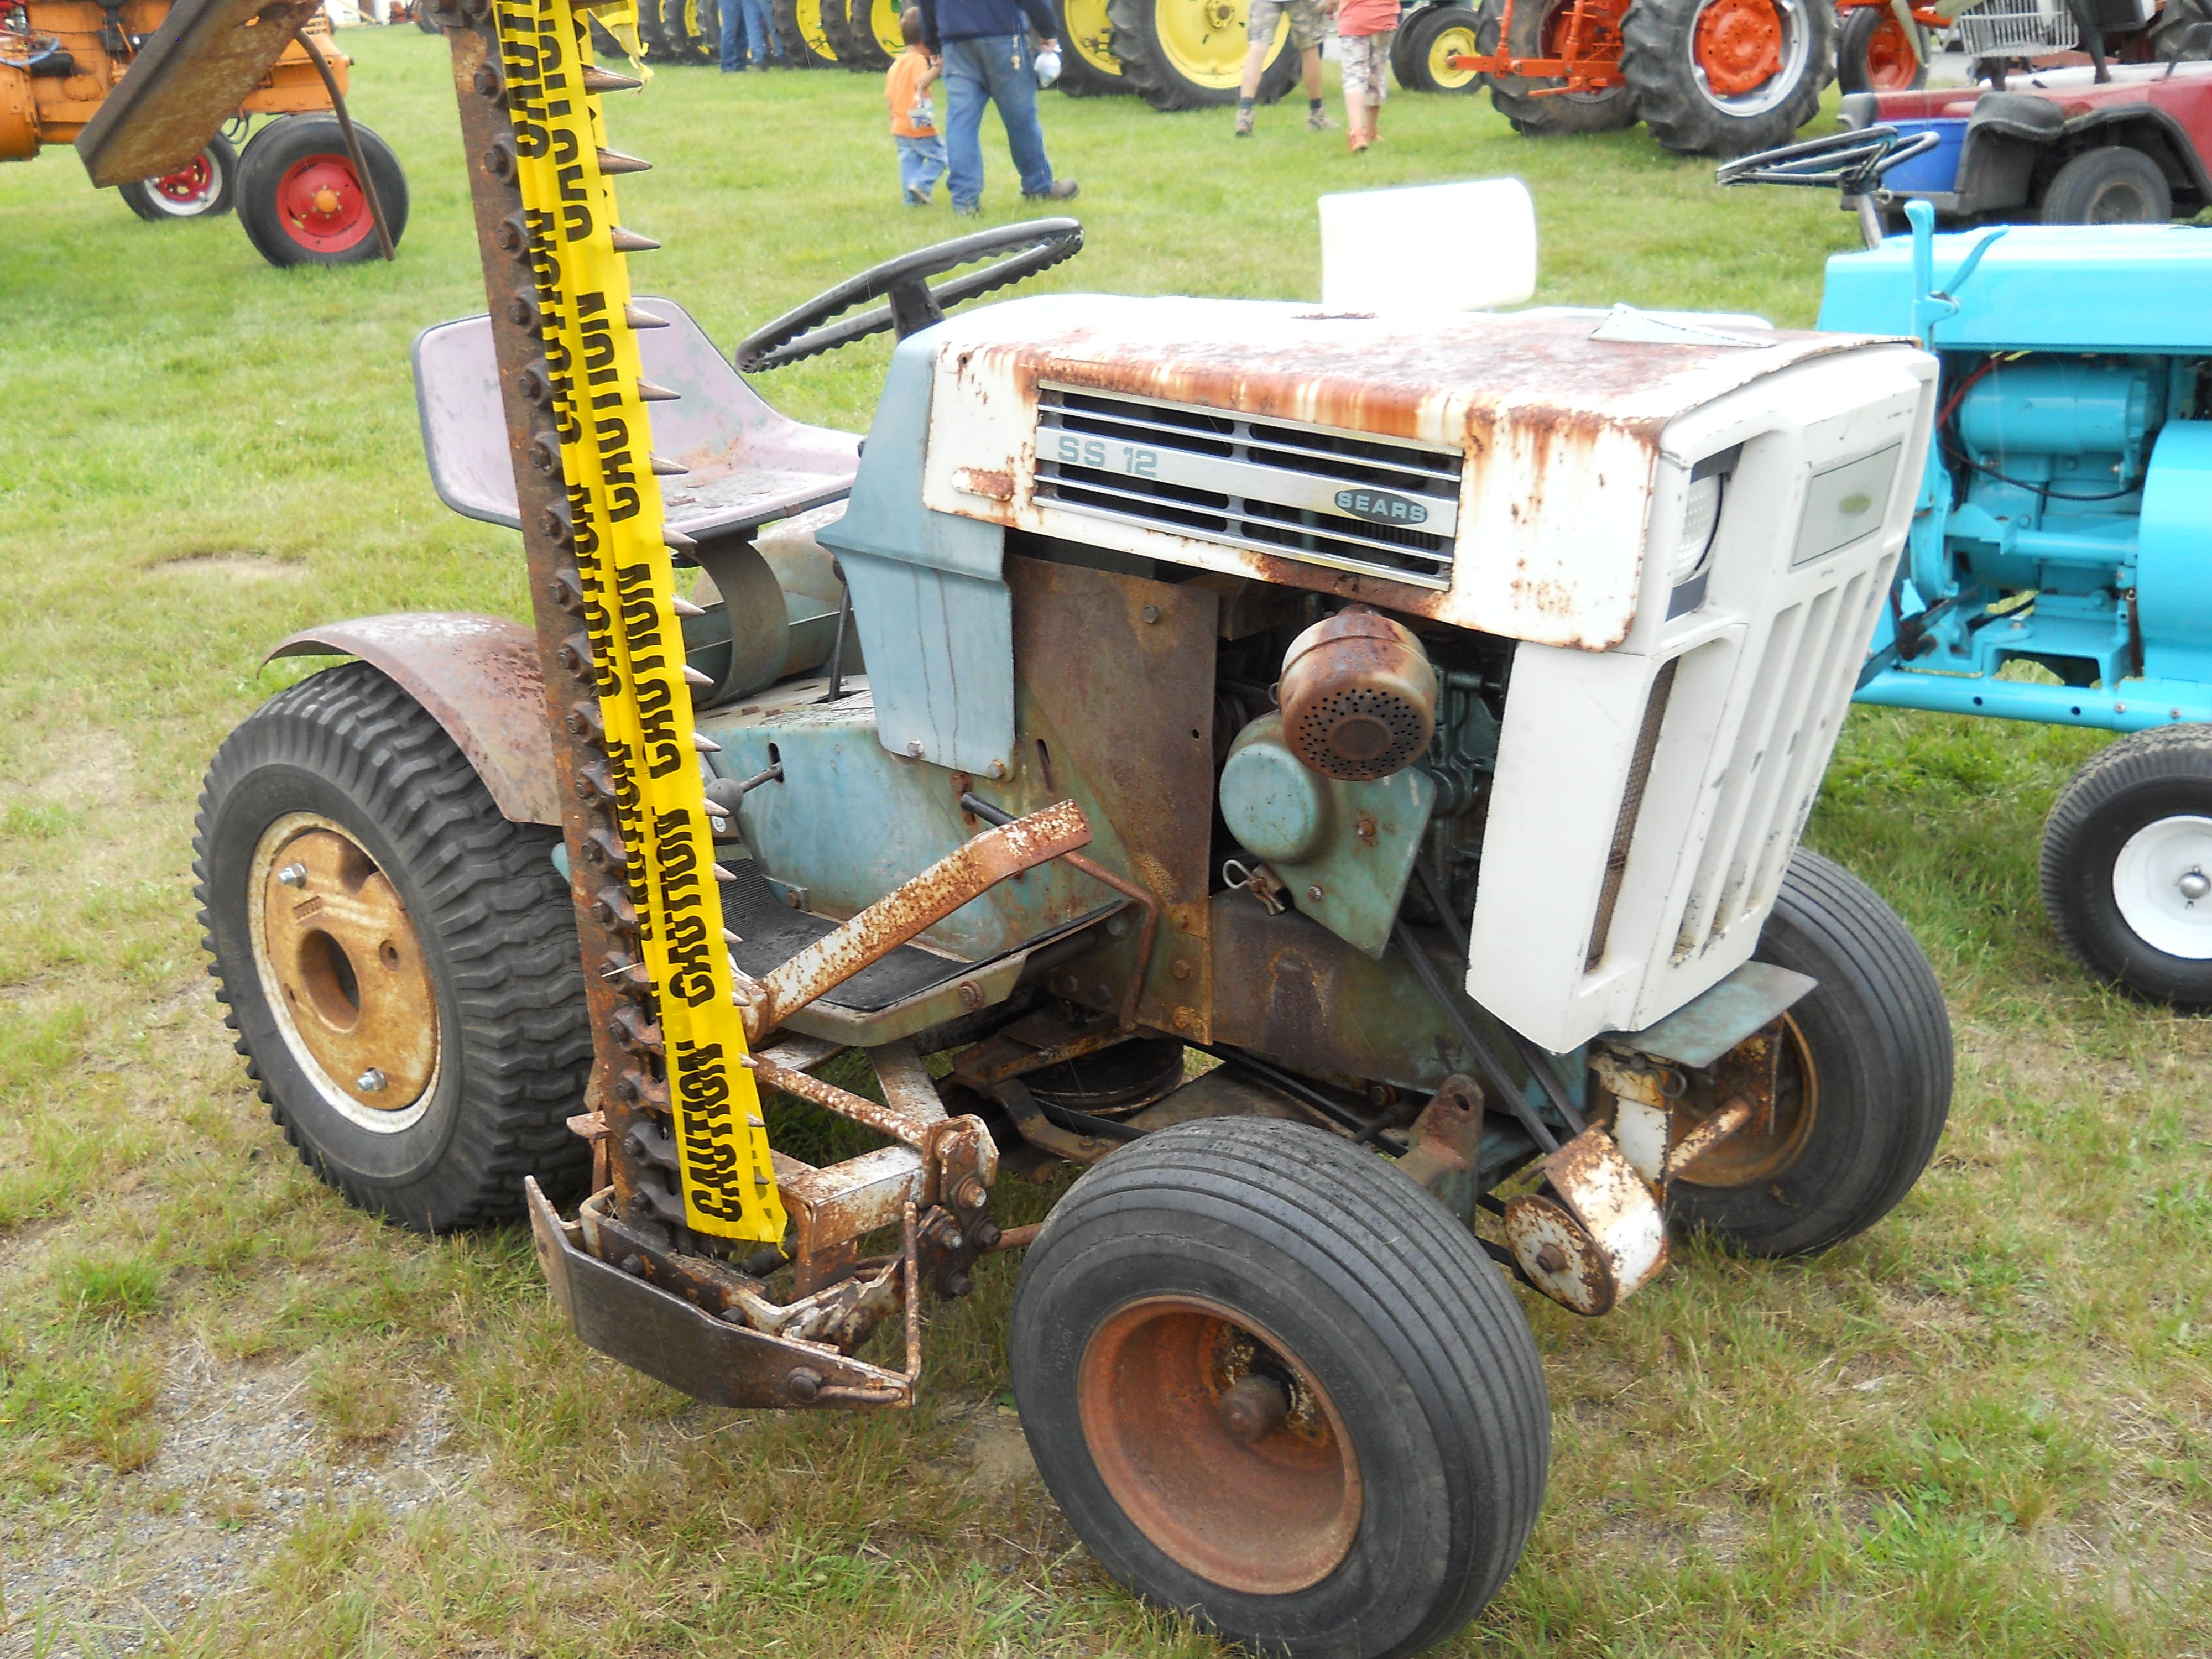 Pin By Robert Thompson On Garden Tractors Pinterest Tractor Small Tractors And Vintage Tractors